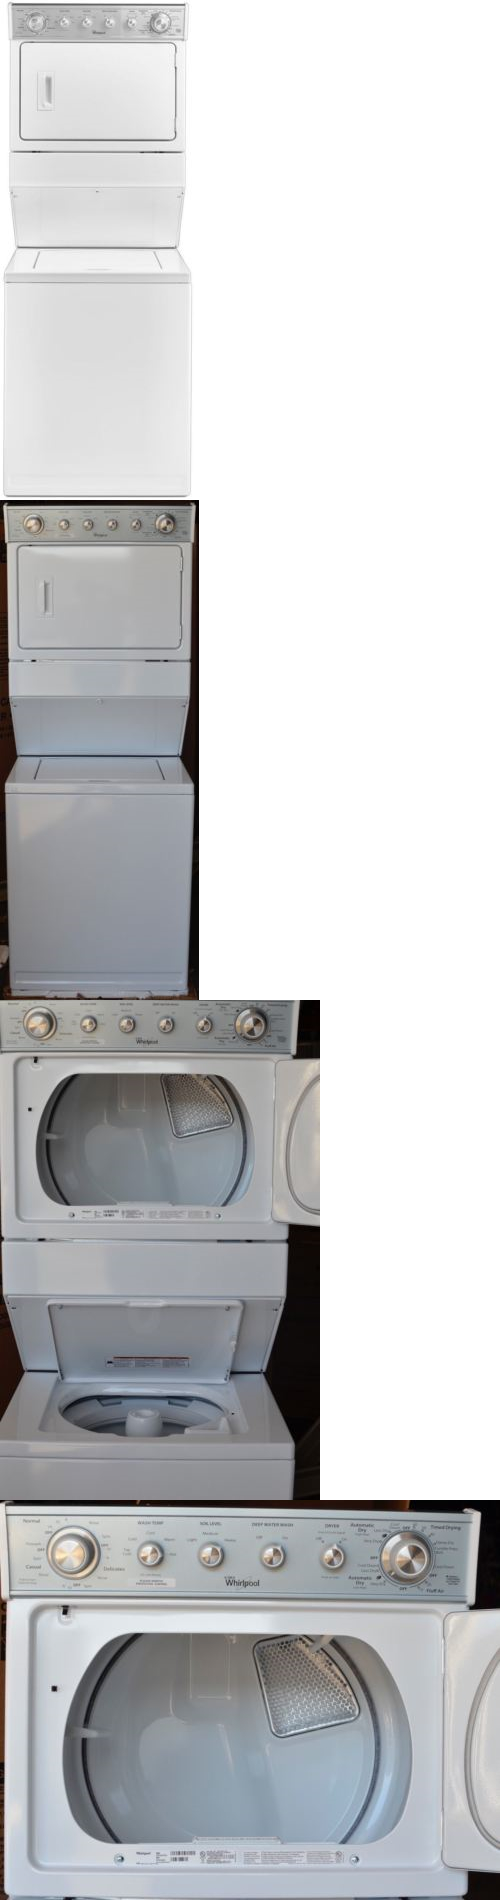 Washer and dryer sets whirlpool gas washer dryer combo